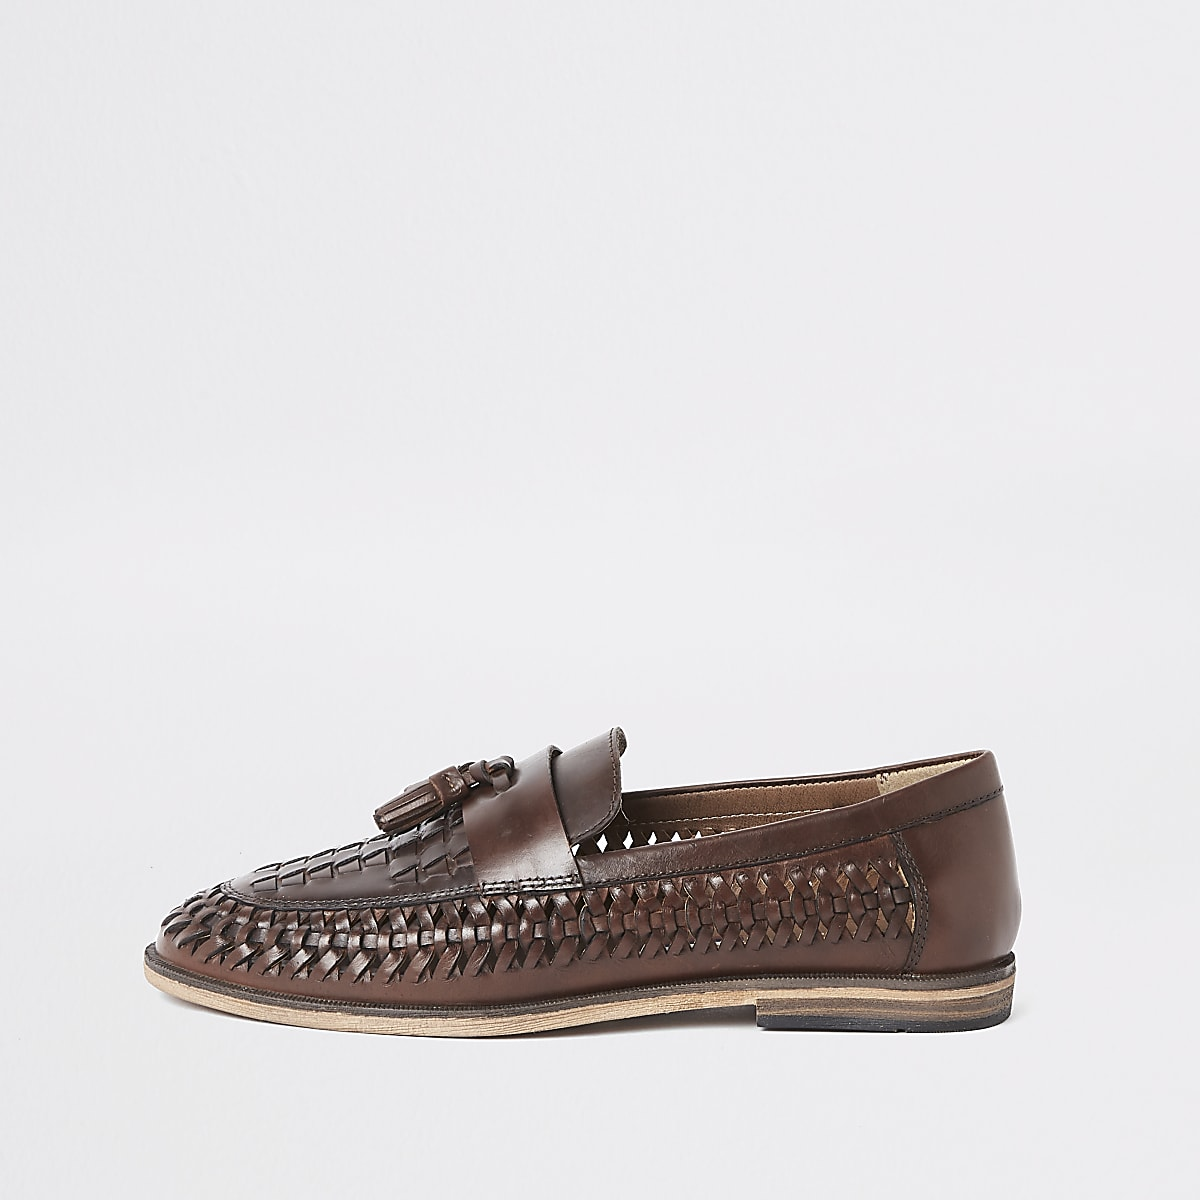 916ce3fa22a566 Dark brown leather woven tassel loafers - Shoes - Shoes & Boots - men